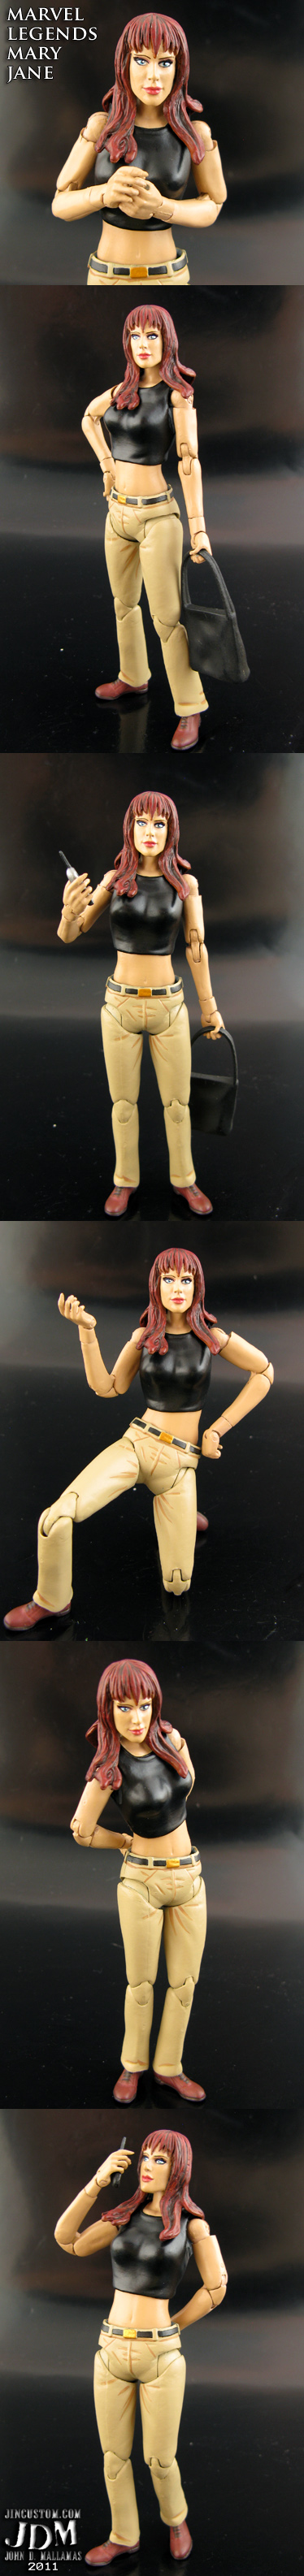 Marvel Legends Mary Jane